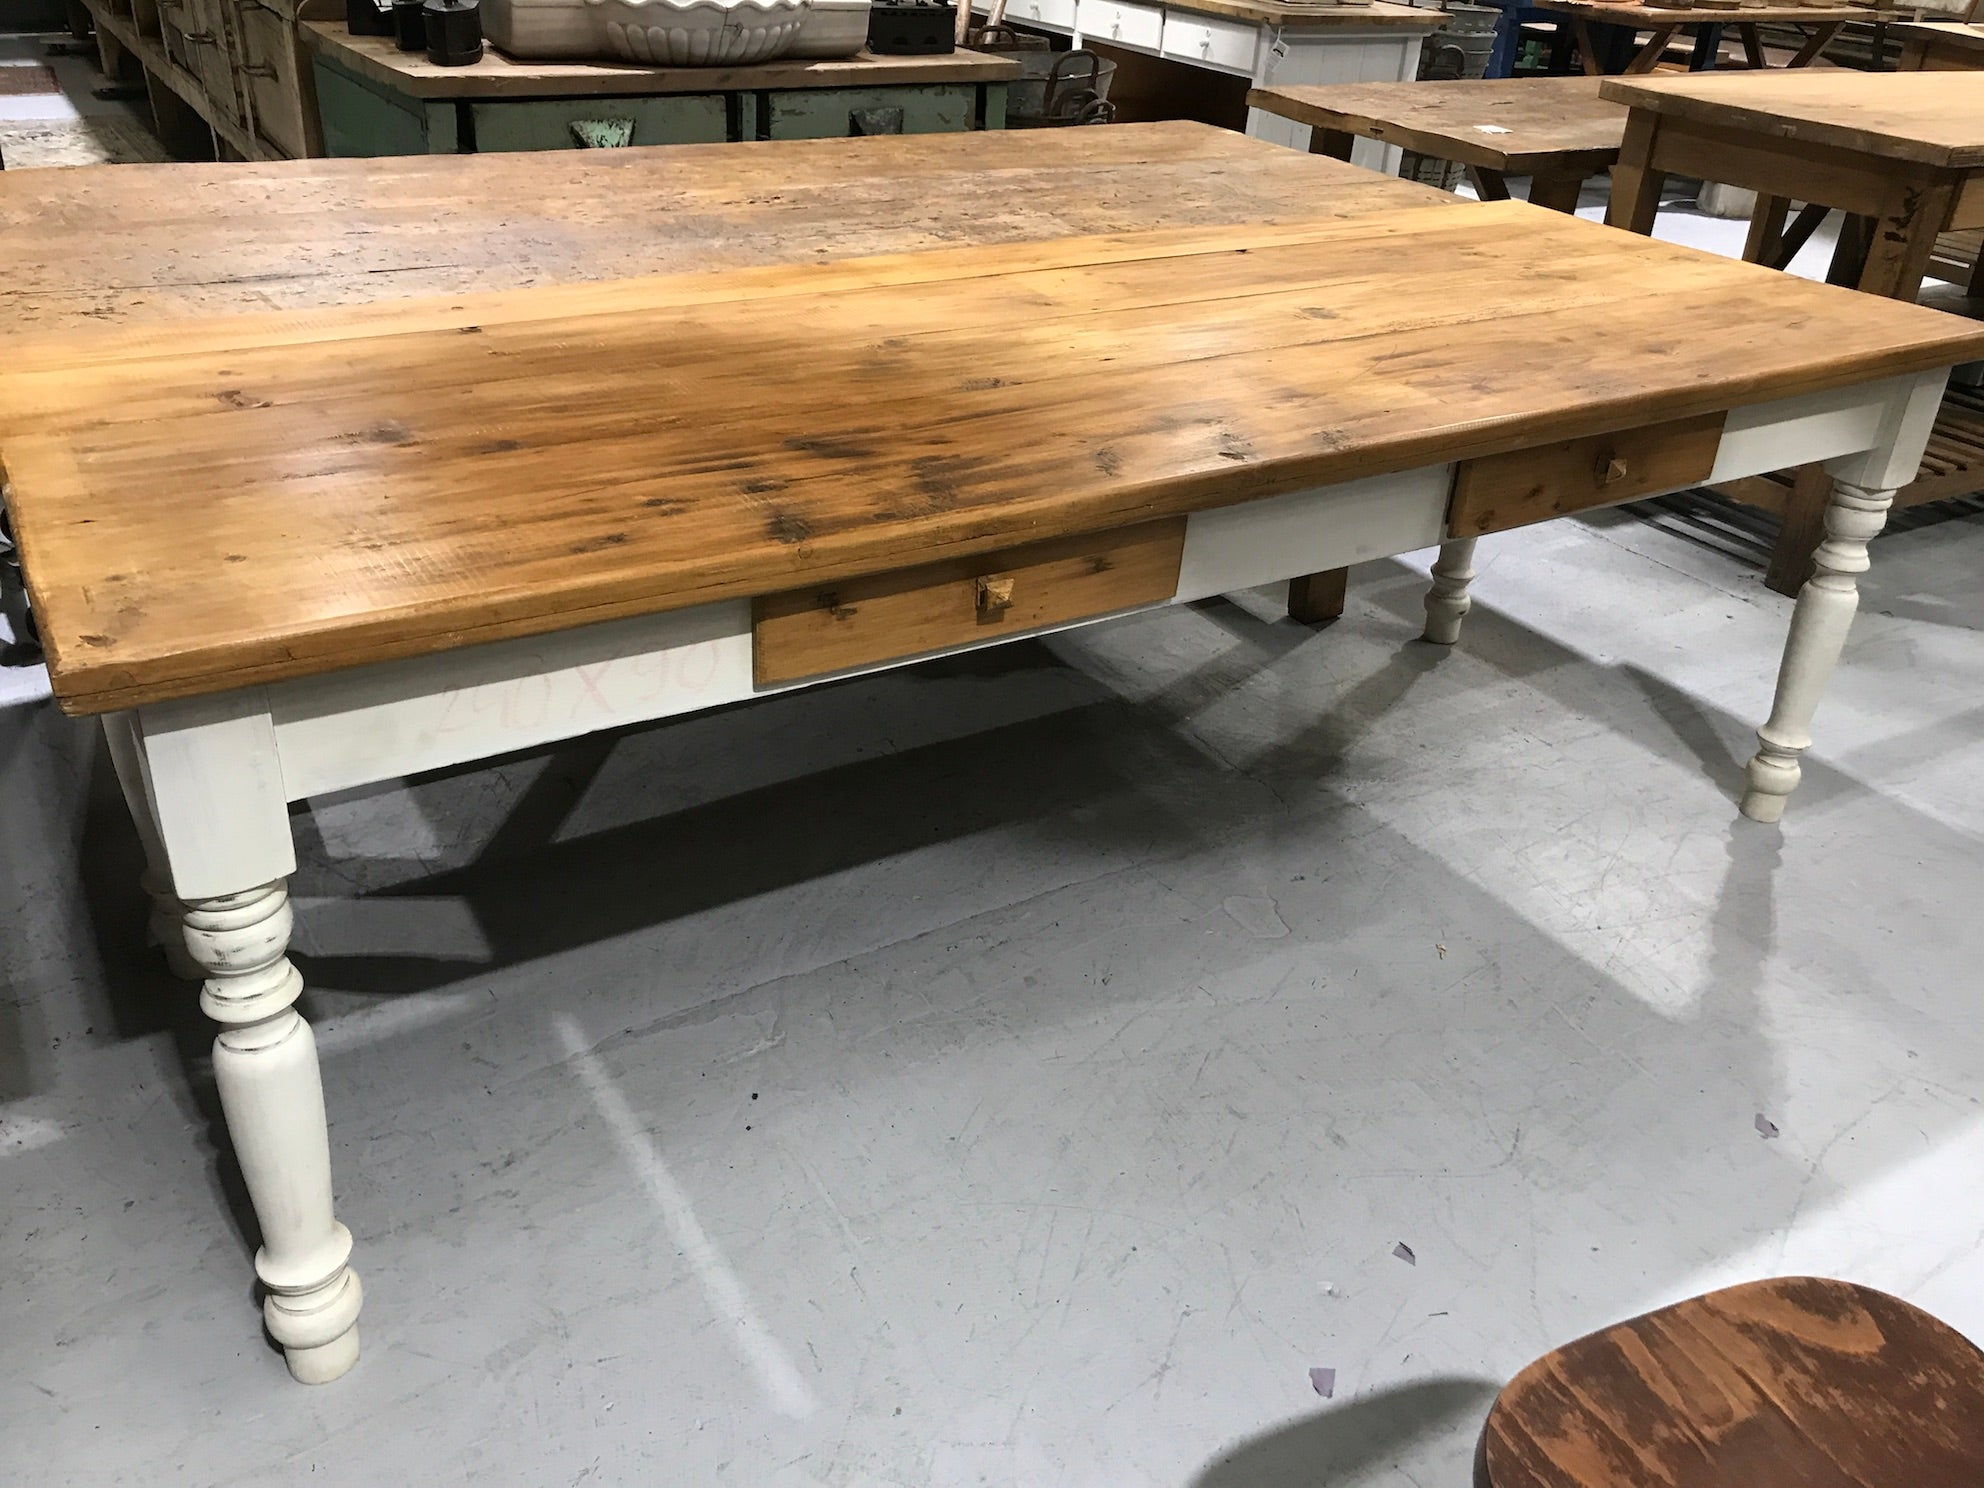 Vintage industrial European kitchen farmhouse dining table 2.4 mt #2100